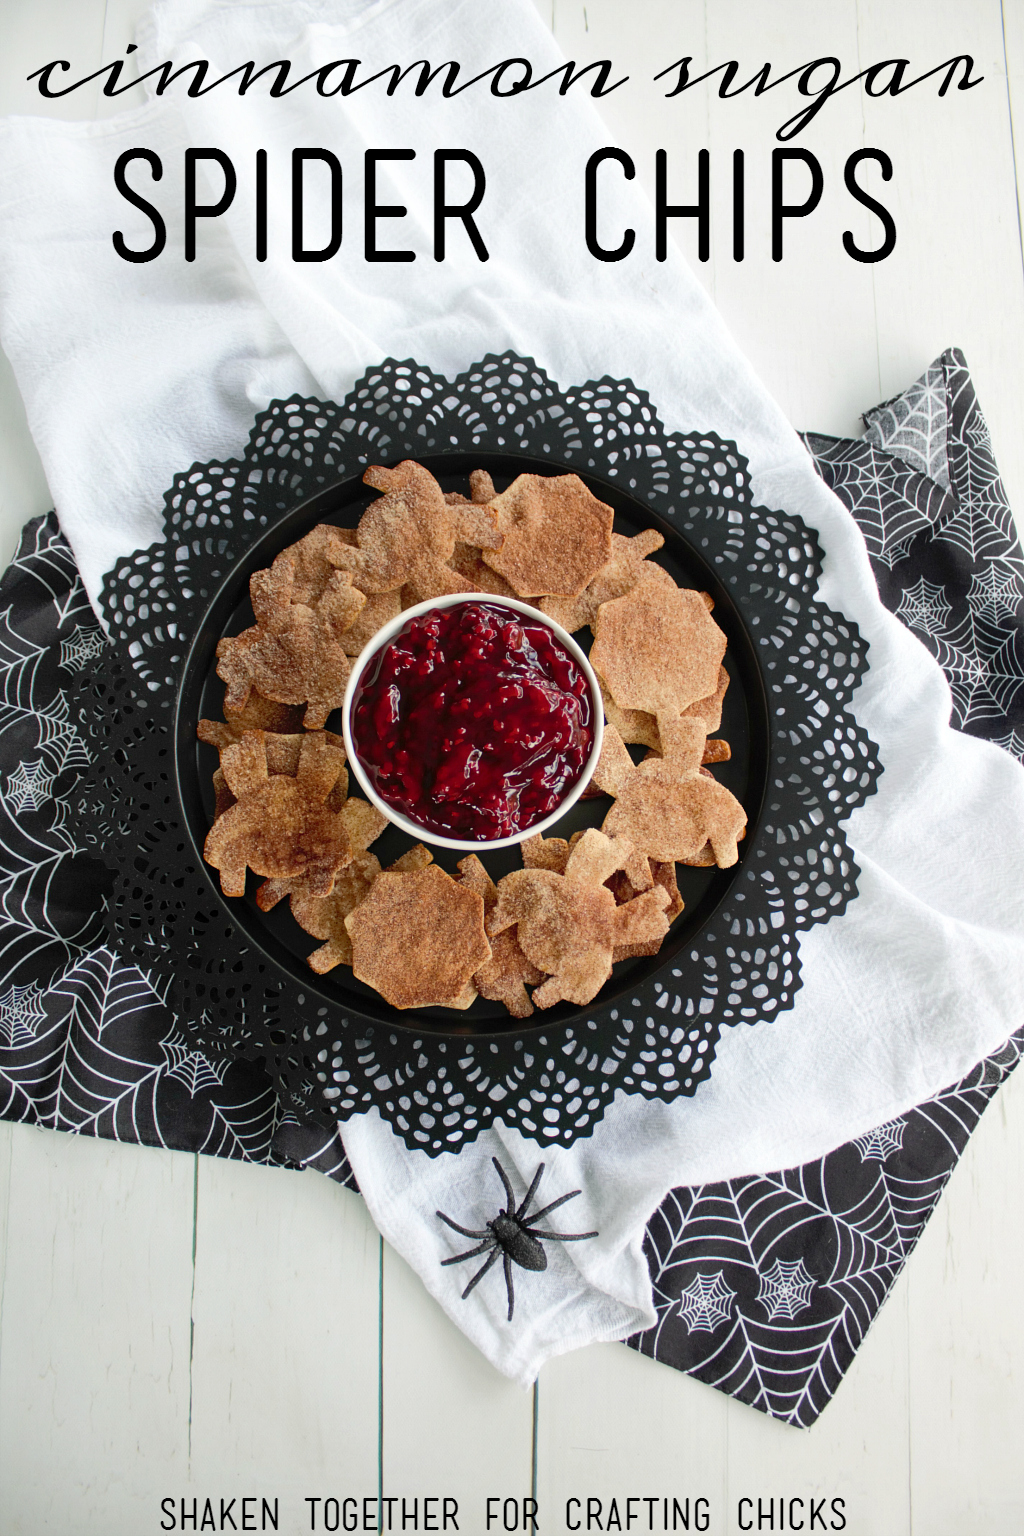 Cinnamon Sugar Spider Chips with tangy Raspberry Guts are a delicious spooky Halloween treat!